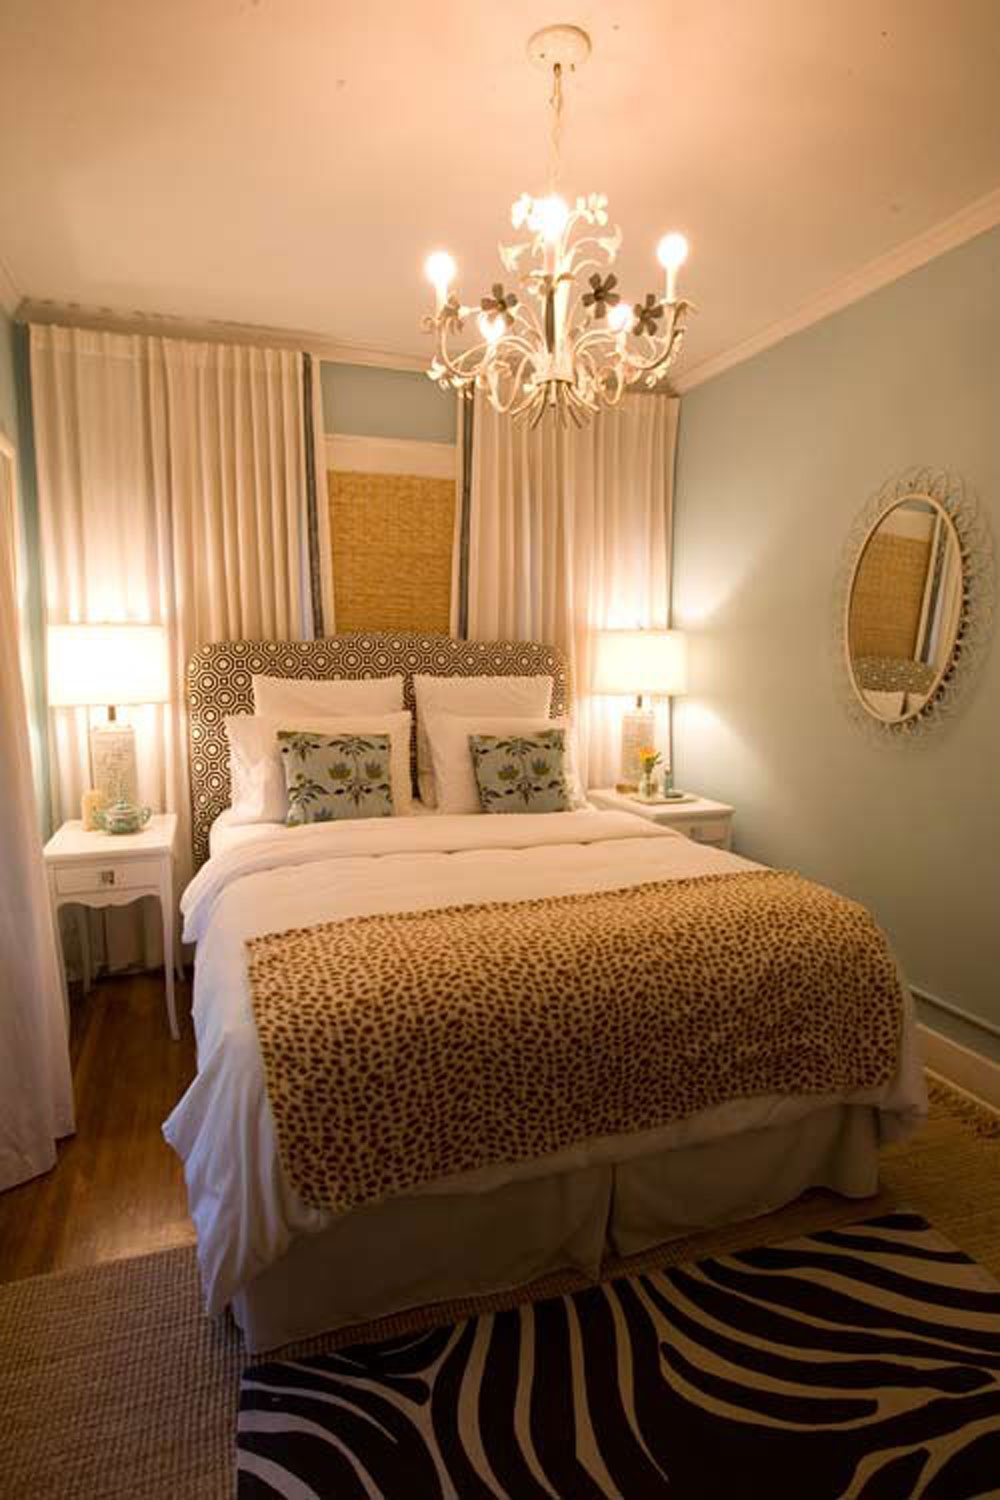 Design Tips for Decorating a Small Bedroom on a Budget 6 Design Tips for Decorating a Small Bedroom on a Budget